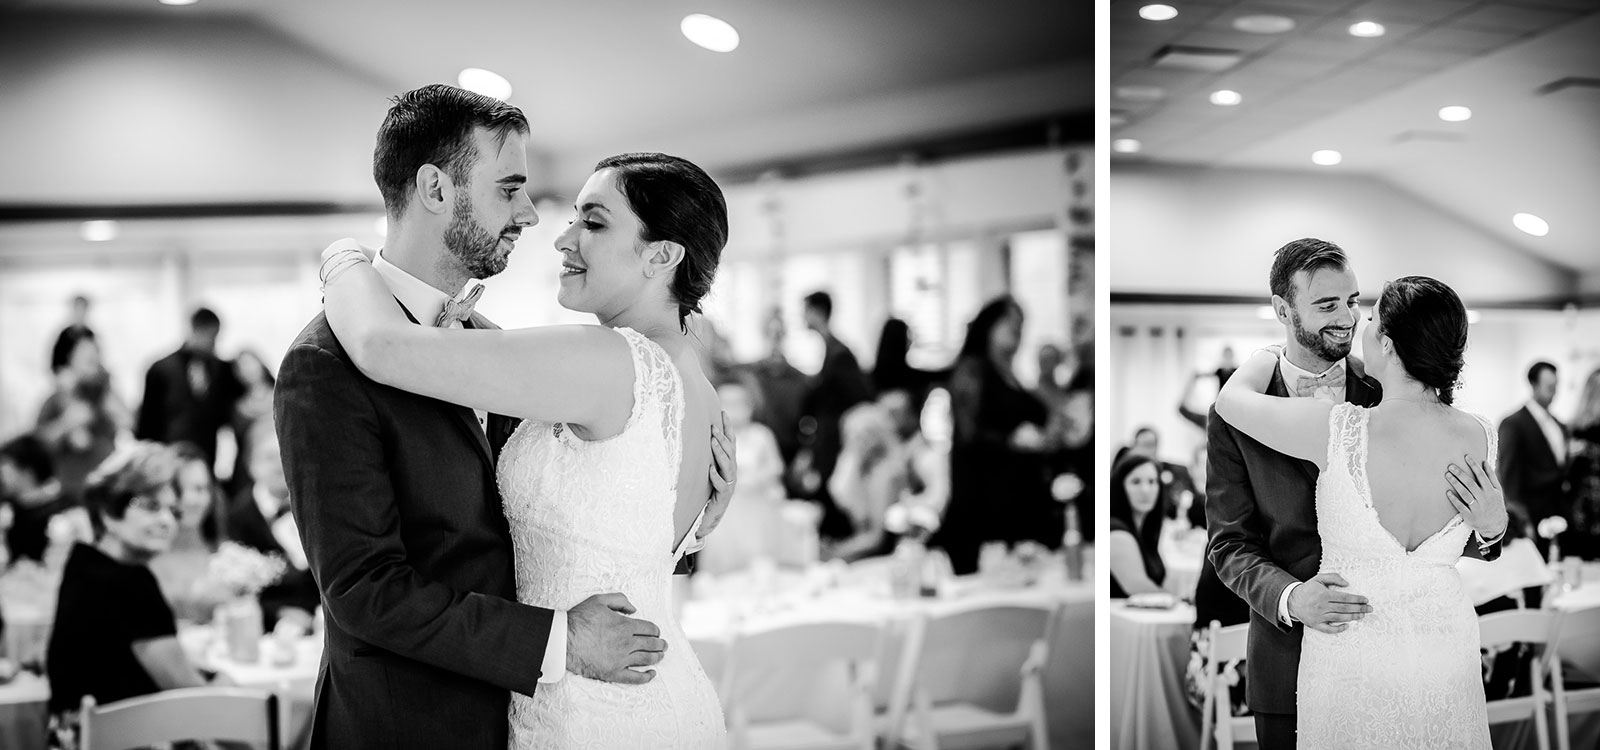 Eric_and_Christy_Photography_Blog_Katie_Travis_Wedding-62-63